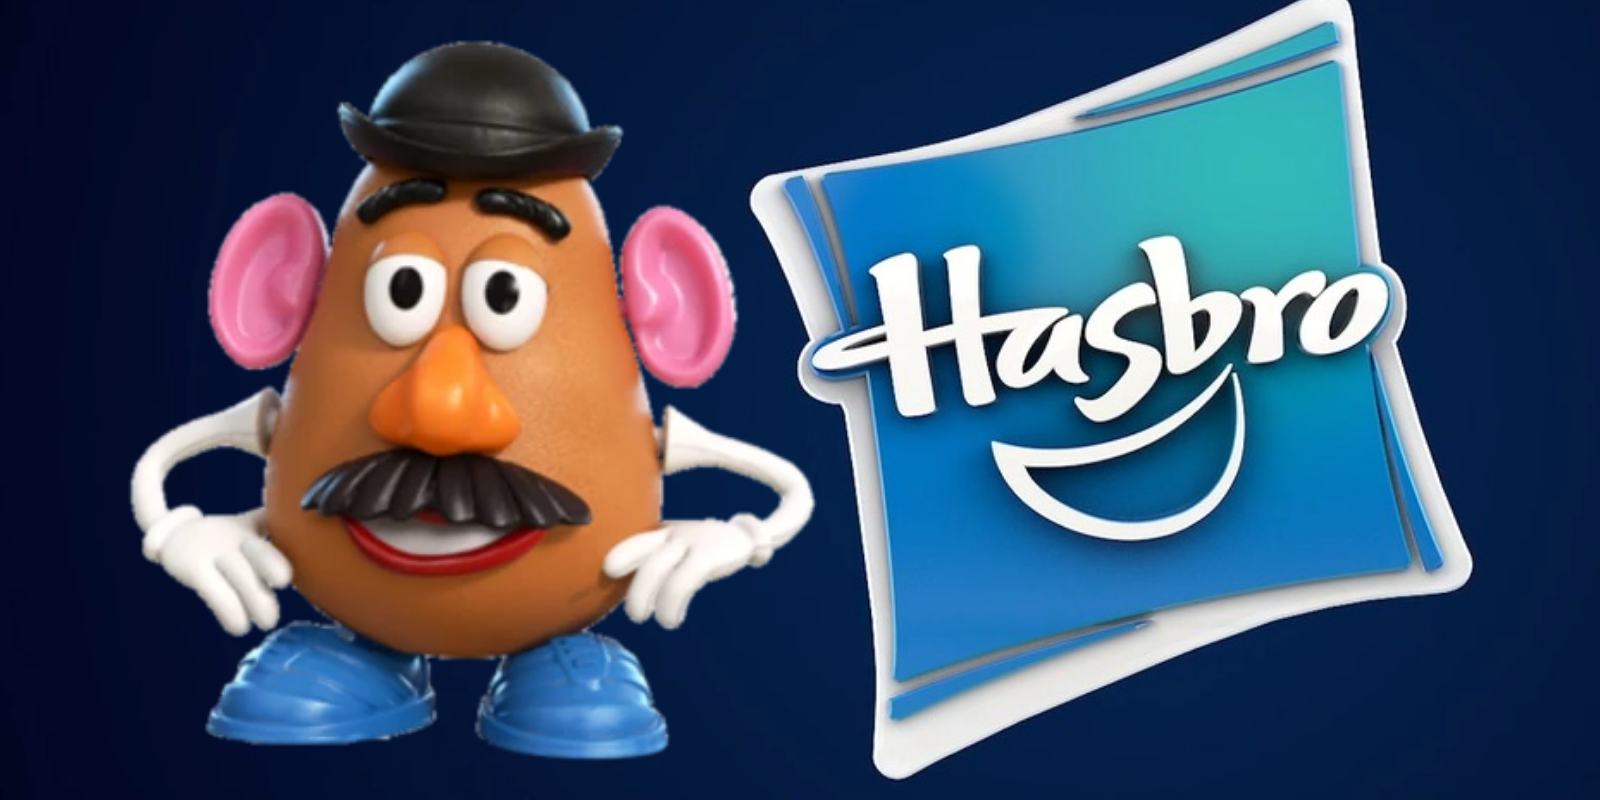 UPDATE: Mr. Potato Head drops 'Mr.' from its brand name